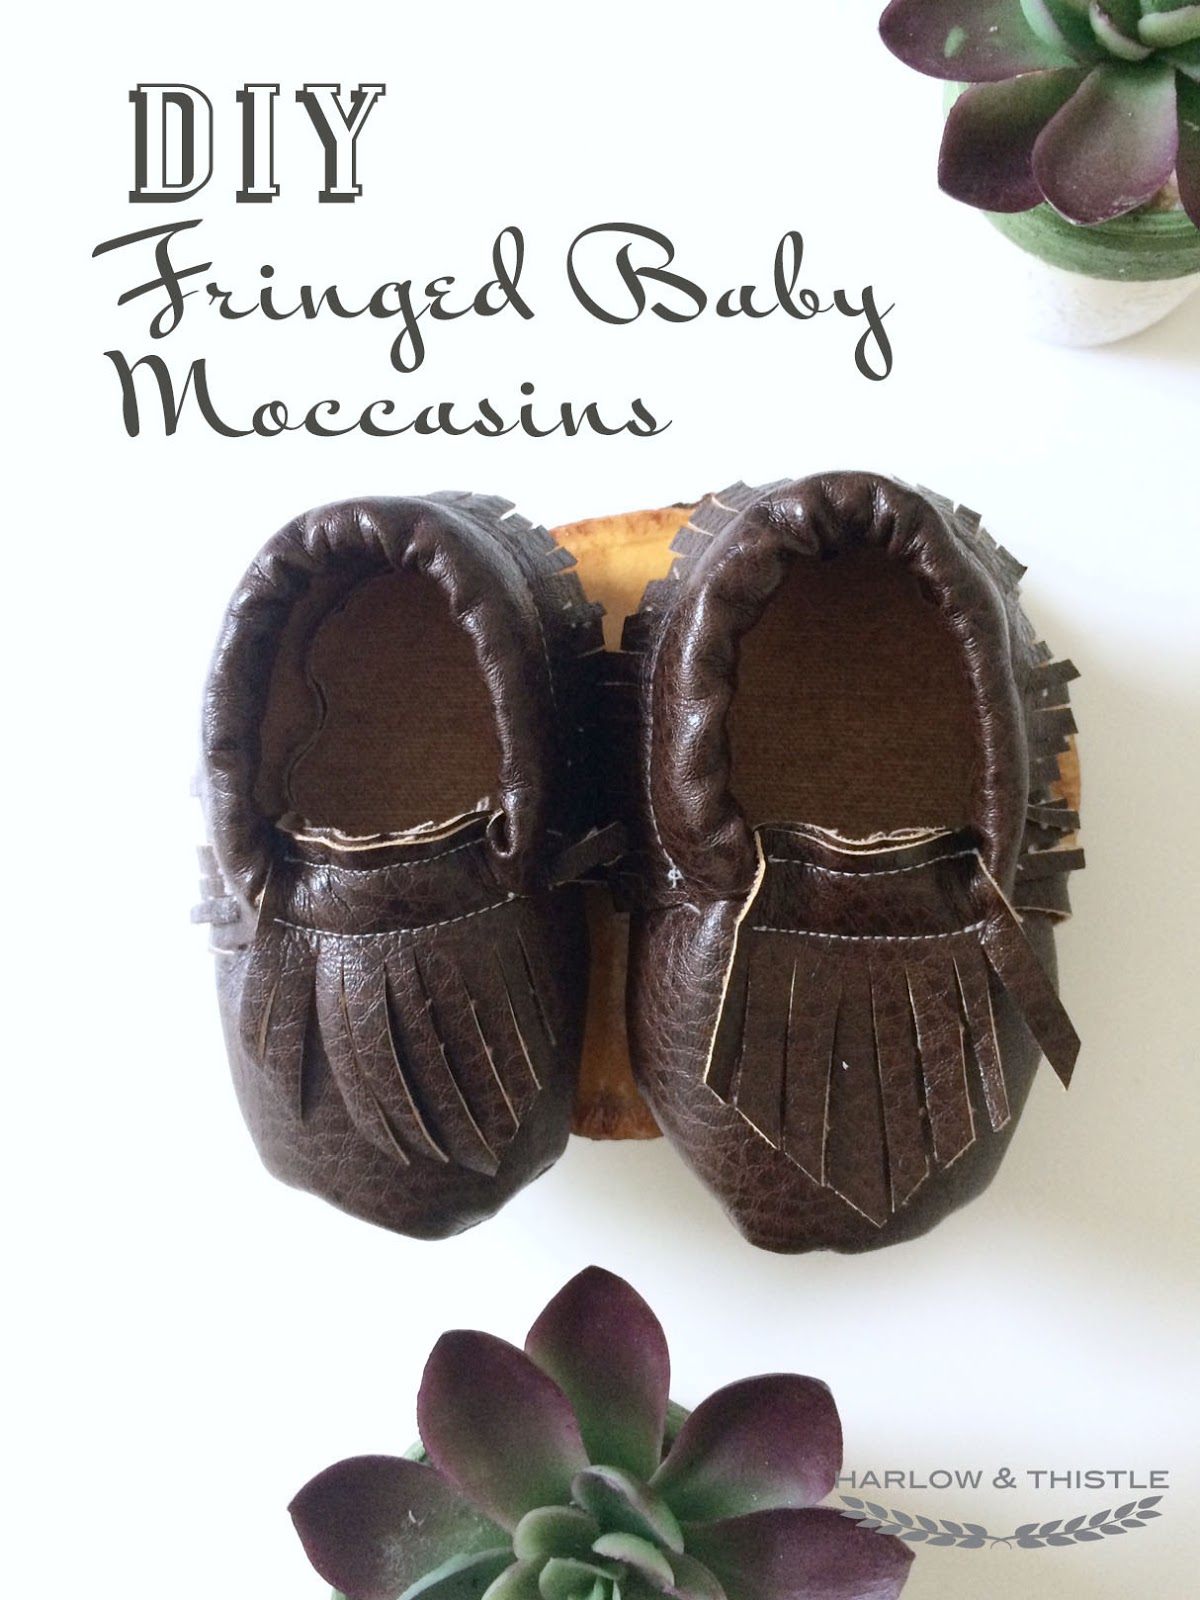 Baby Moccasin Shoes >> DIY Fringed Baby Moccasins   Harlow & Thistle - Home Design - Lifestyle - DIY